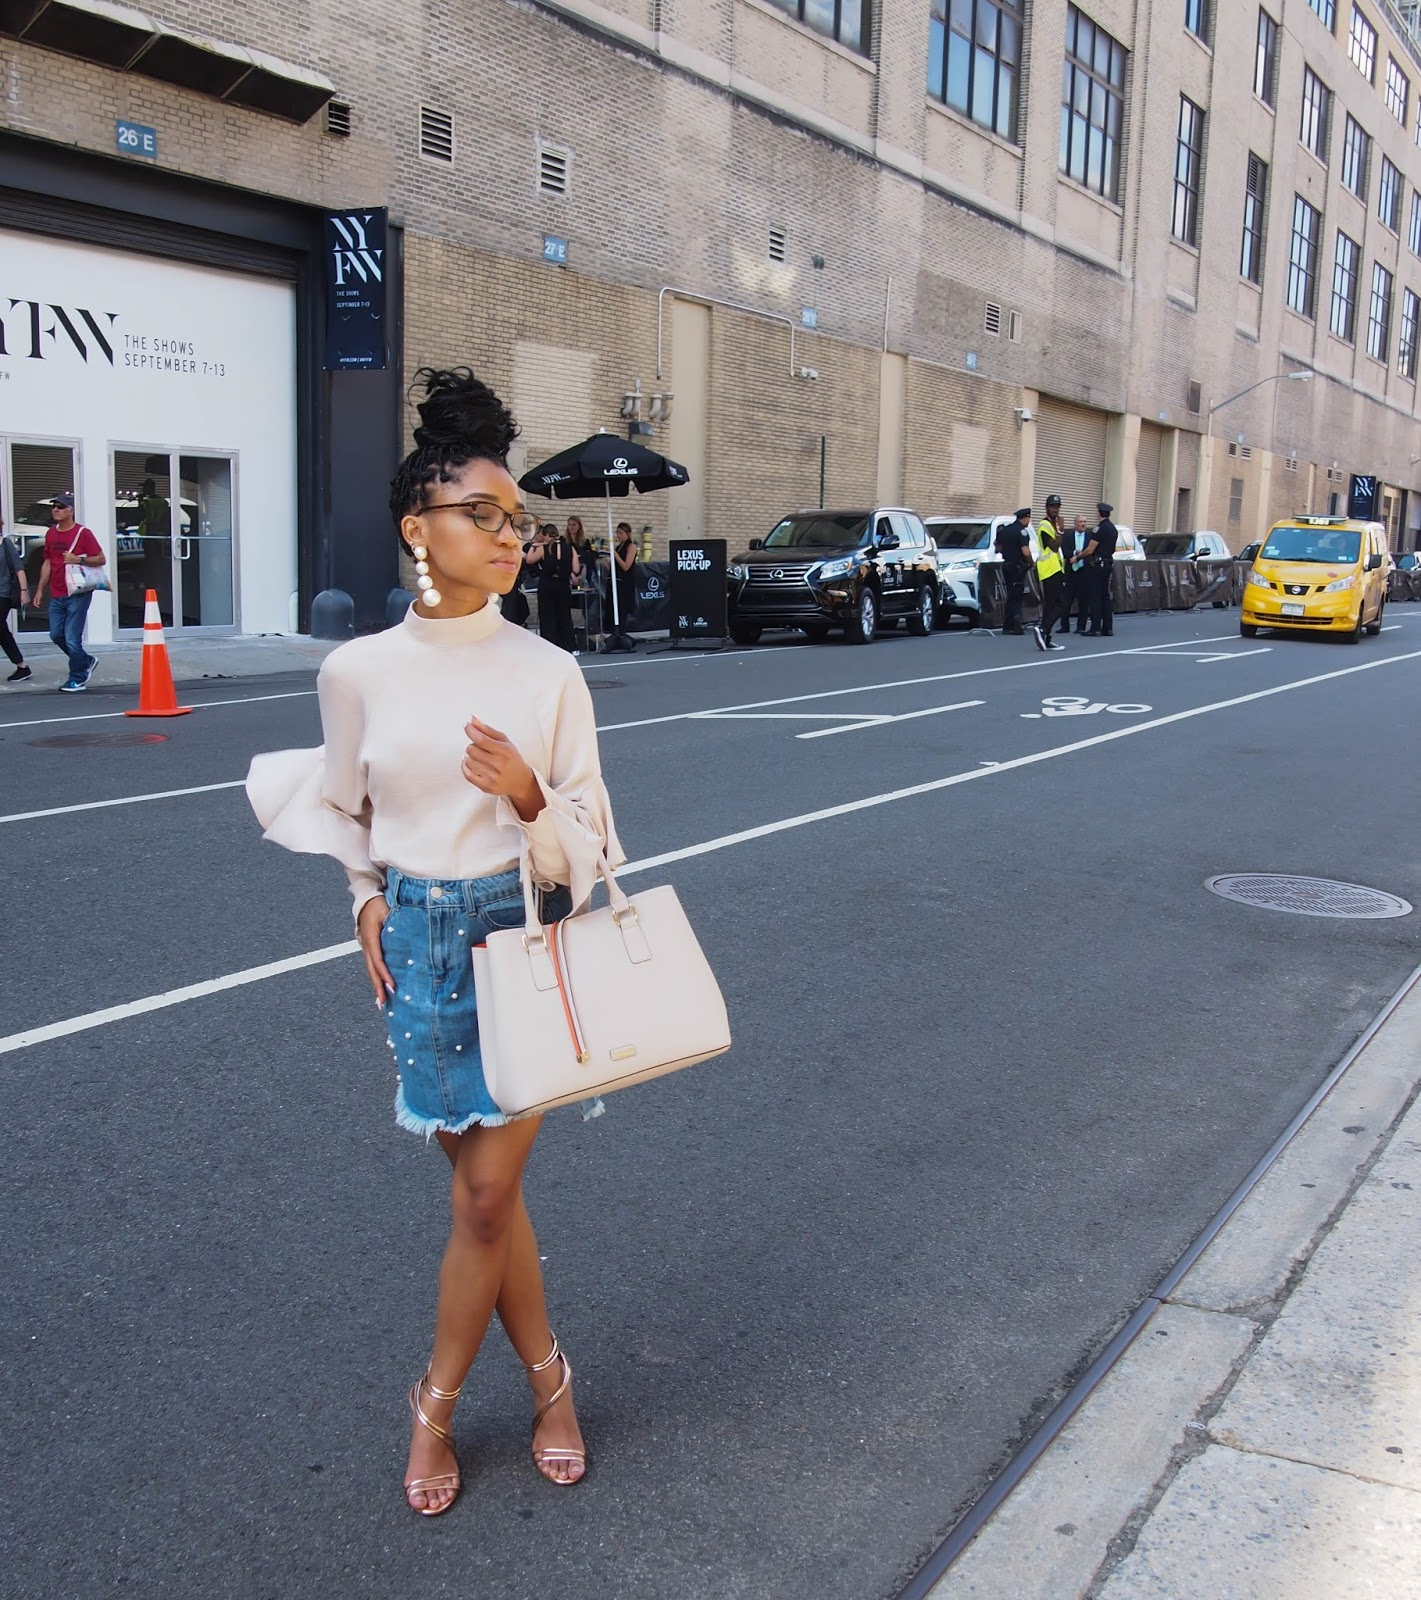 NYFW, NYFW streetstyle, NYFW 2019, NYFW Tickets, New York Fashion Week, Steve Madden, Rose Gold Heels, Aldo Shoes, Aldo Purse, Pearls, Pearl Earrings, Moon and Lola, Jean Skirt, Box Braids, Satin Blouse, H&M, The Strong Suit, NC Blogger